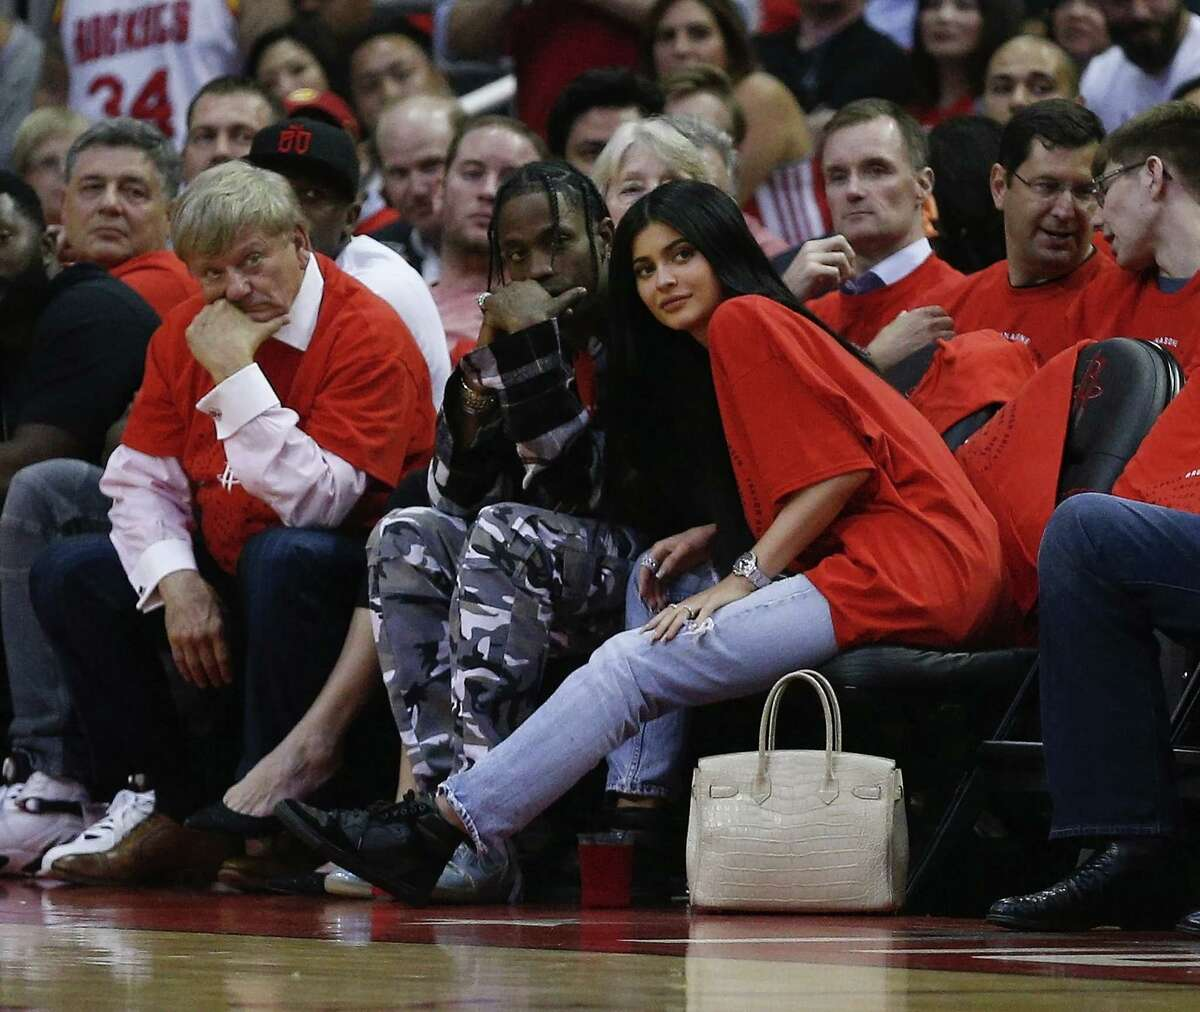 Keep going for a look back at the Rockets' series against the Spurs.  Houston rapper Travis Scott and Kylie Jenner watch courtside during Game Five of the Western Conference Quarterfinals game of the 2017 NBA Playoffs at Toyota Center on April 25, 2017 in Houston, Texas.